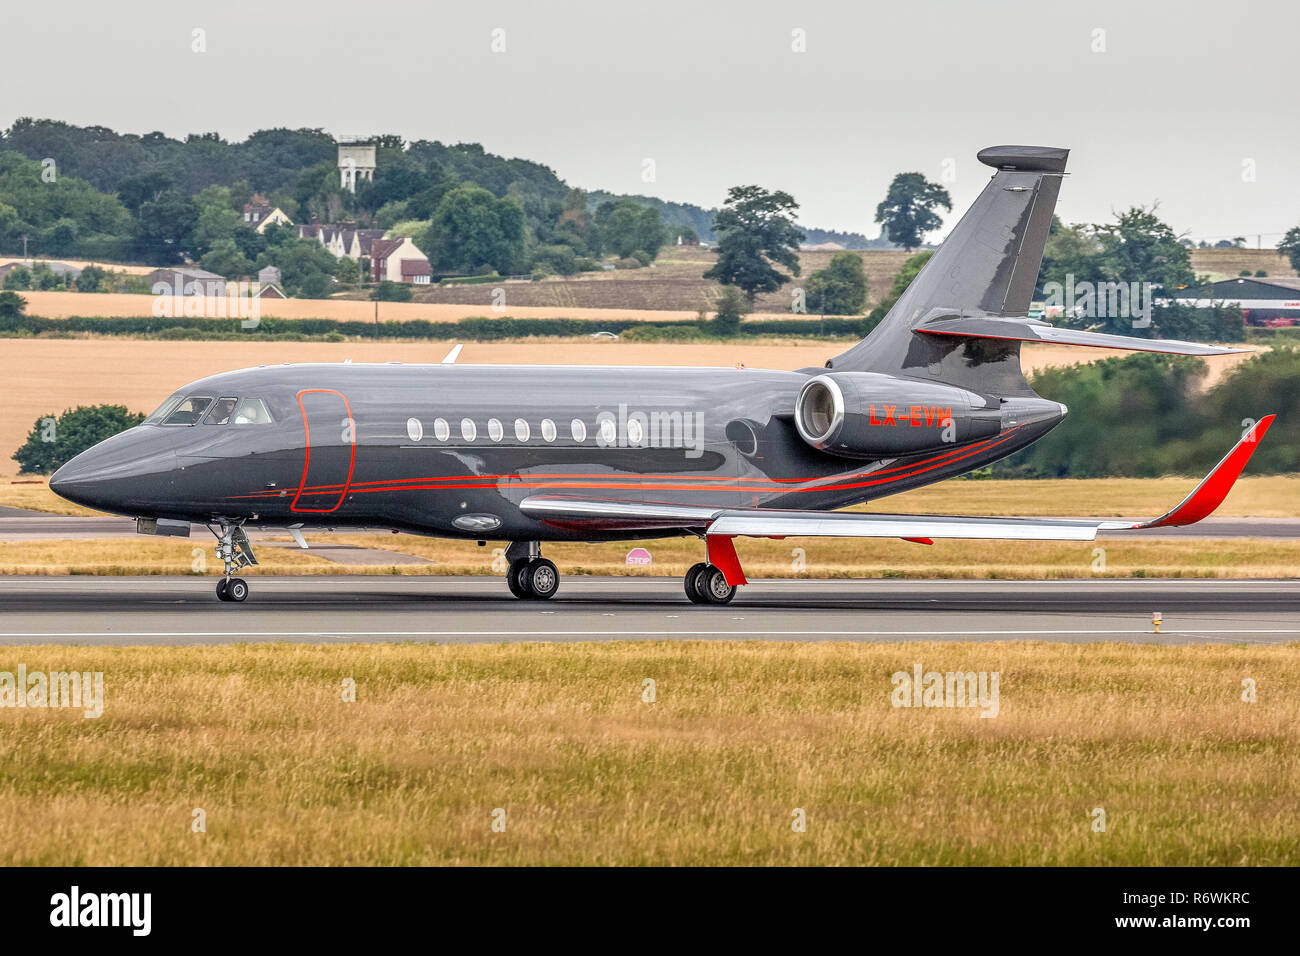 A Dassault Falcon 2000EX Executive Business jet, registered in Luxembourg as LX-EVM, taxying on the runway at London Luton Airport in England. - Stock Image